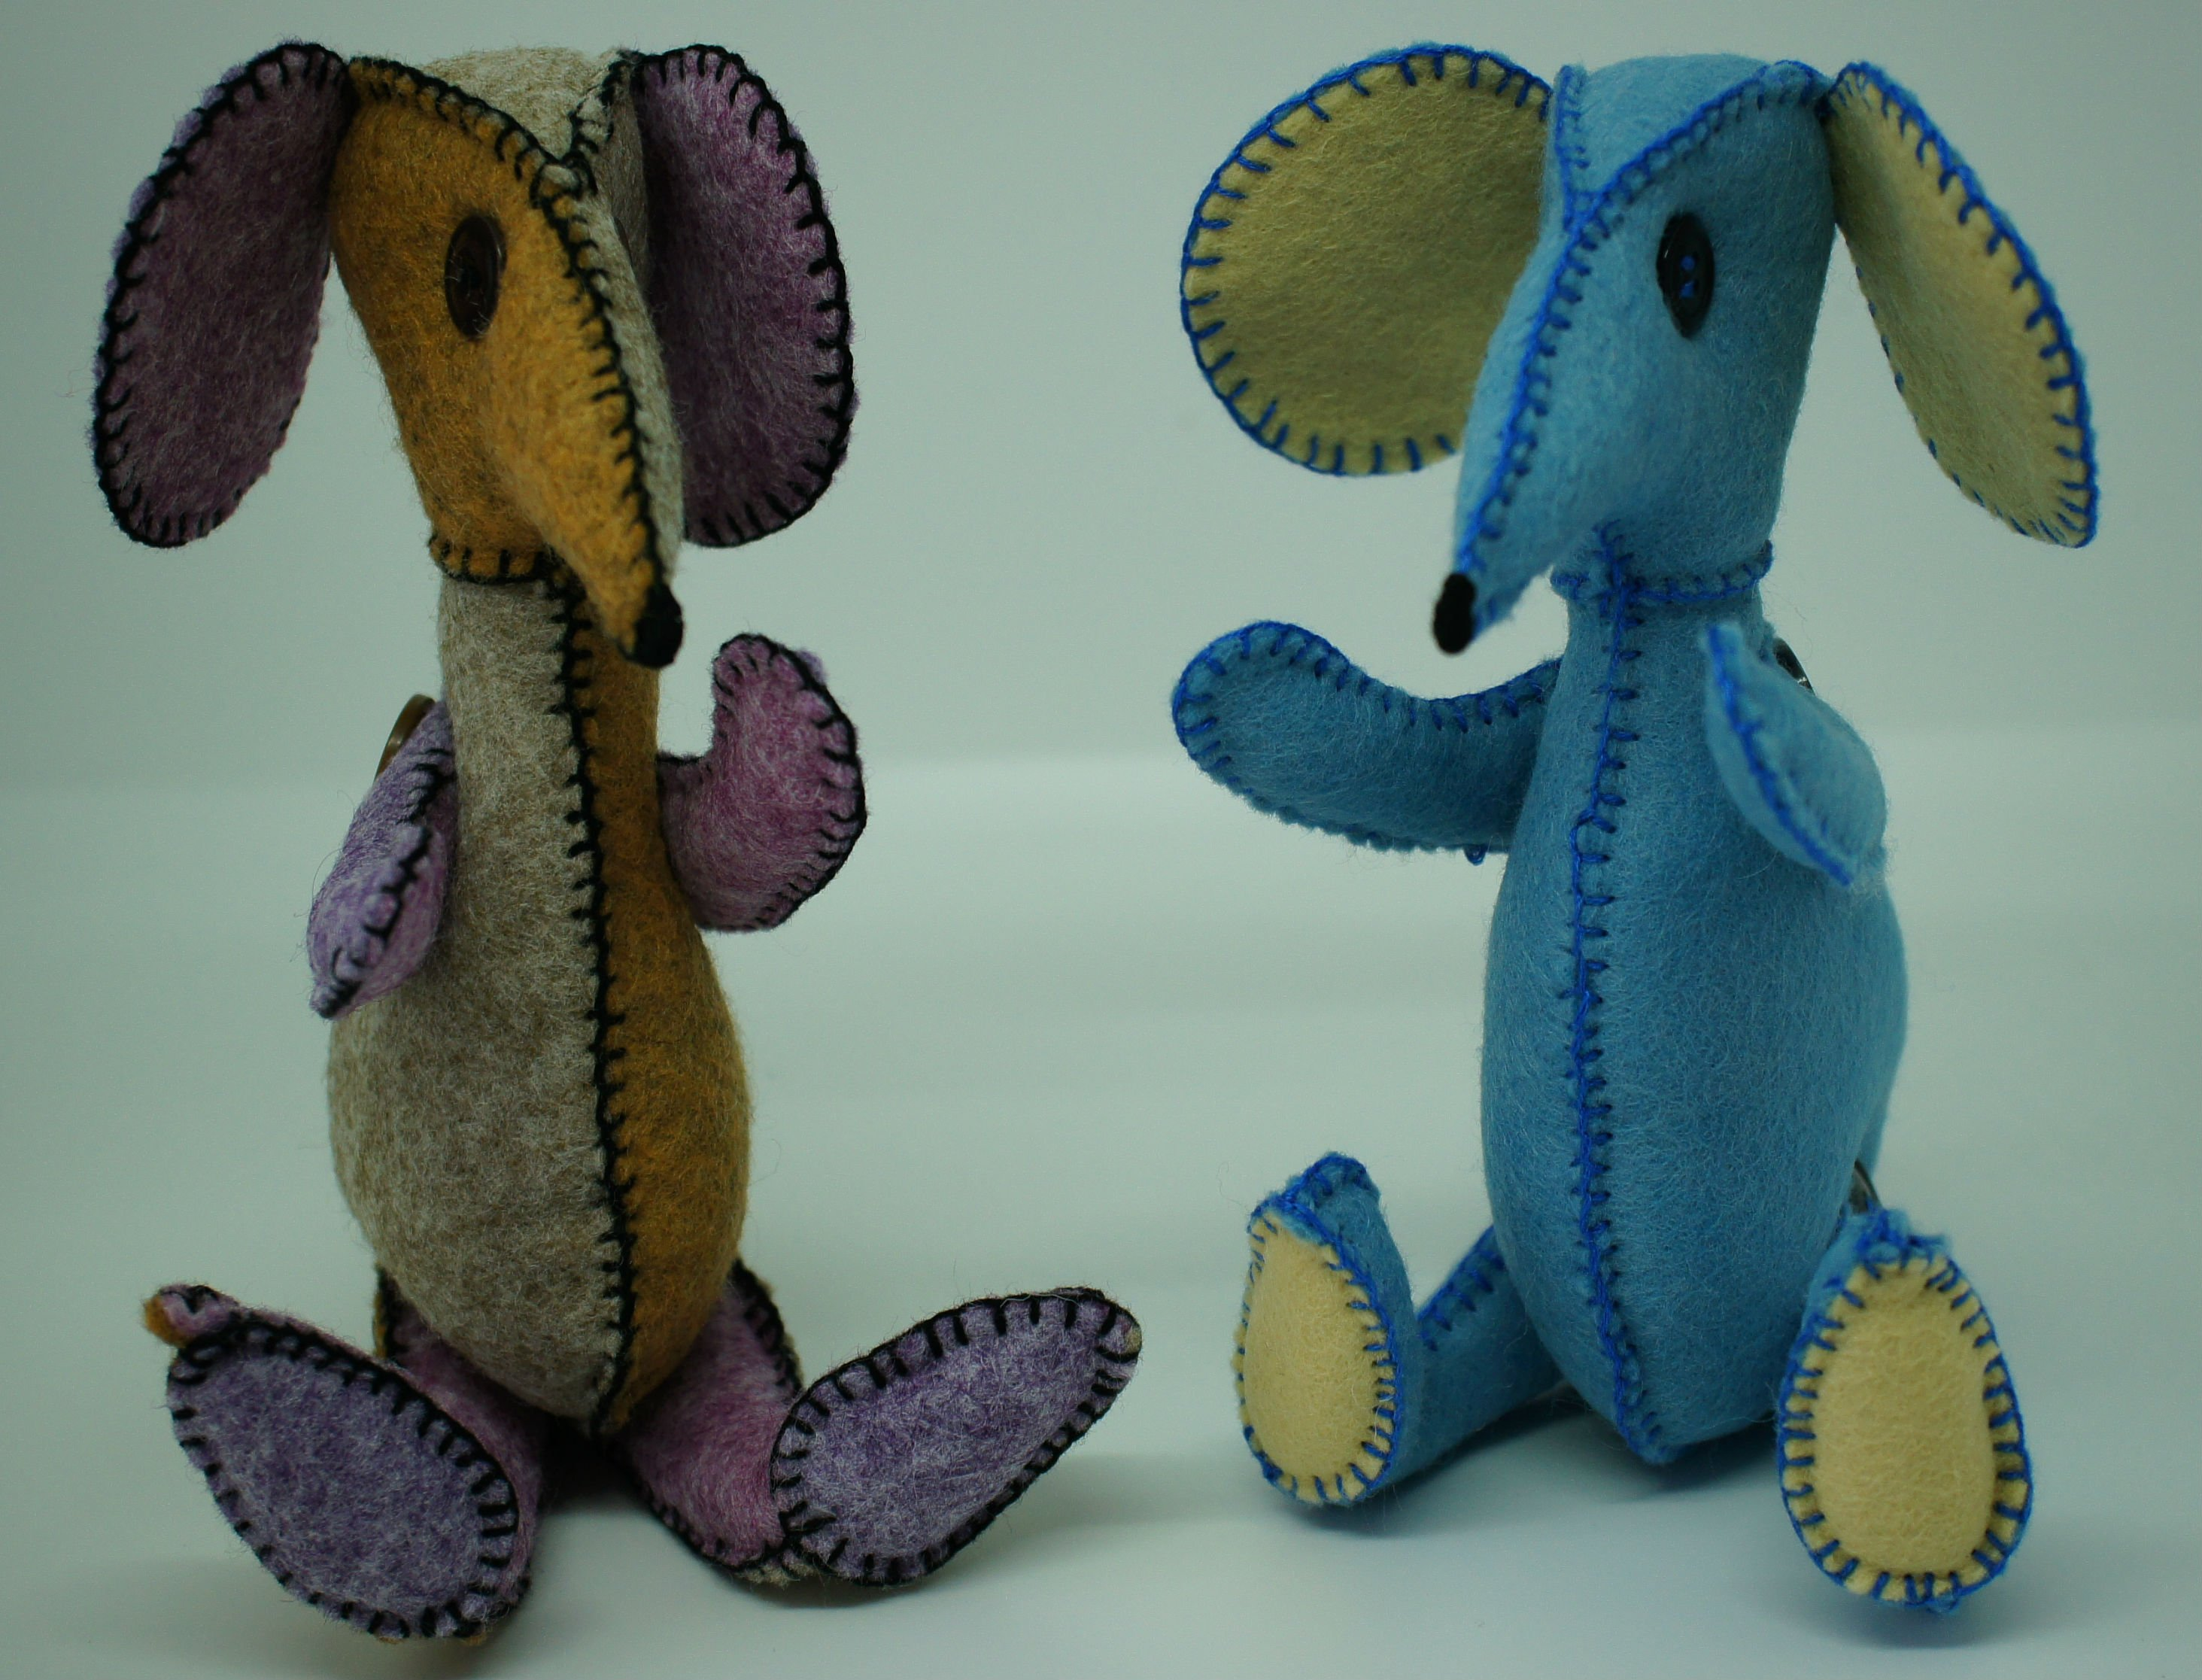 My completed felt mice from the House of Zandra button buddy mouse pattern.